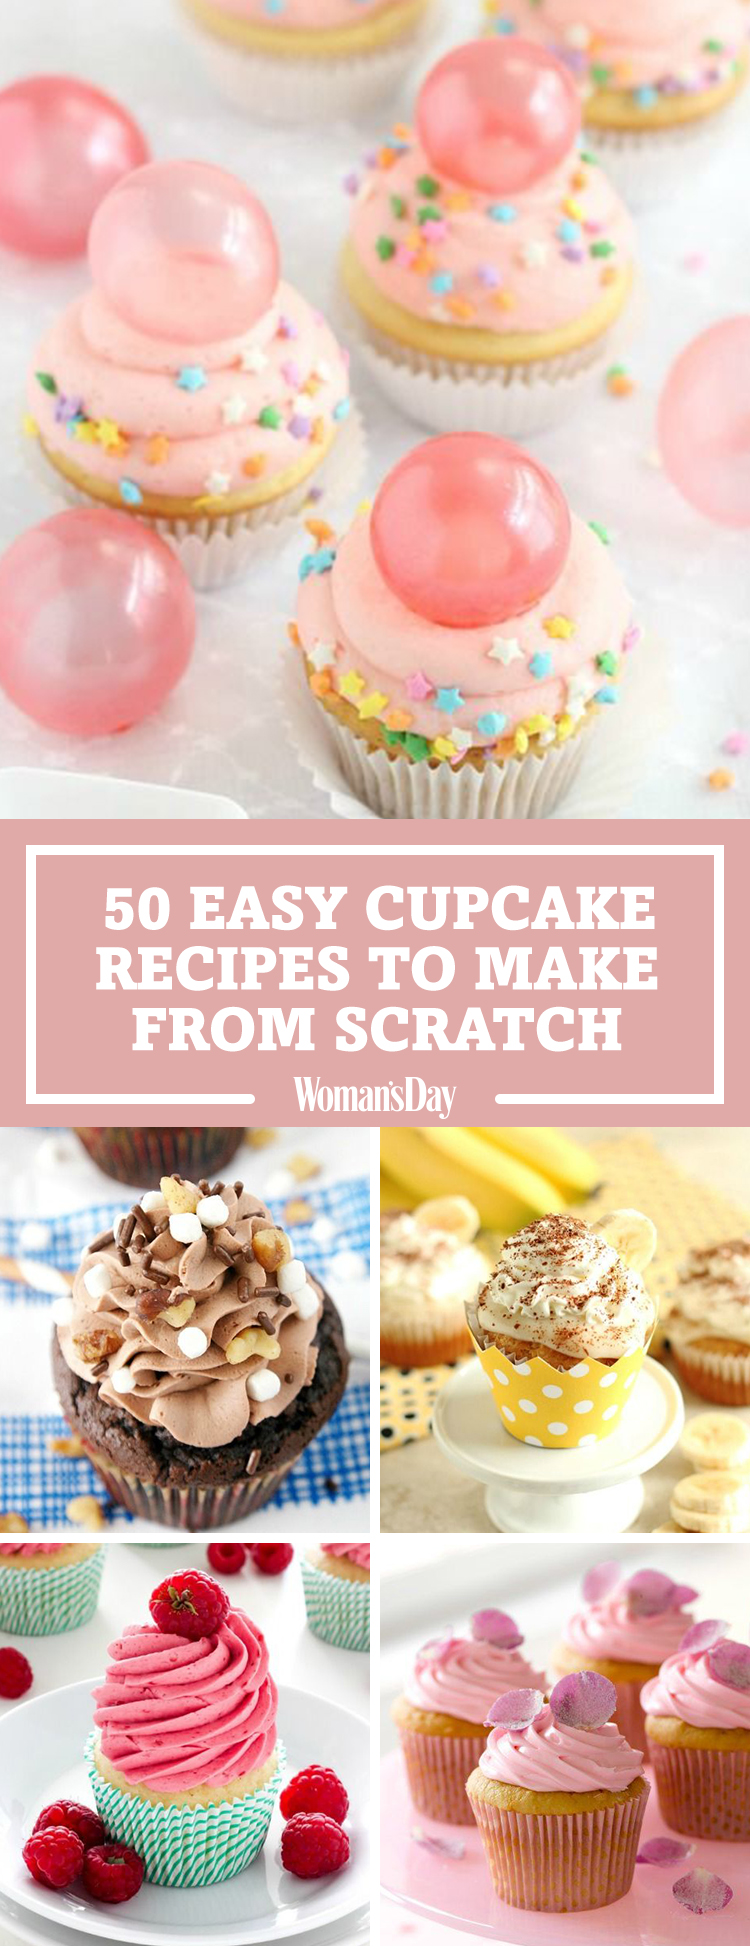 Scratch cupcake recipes easy